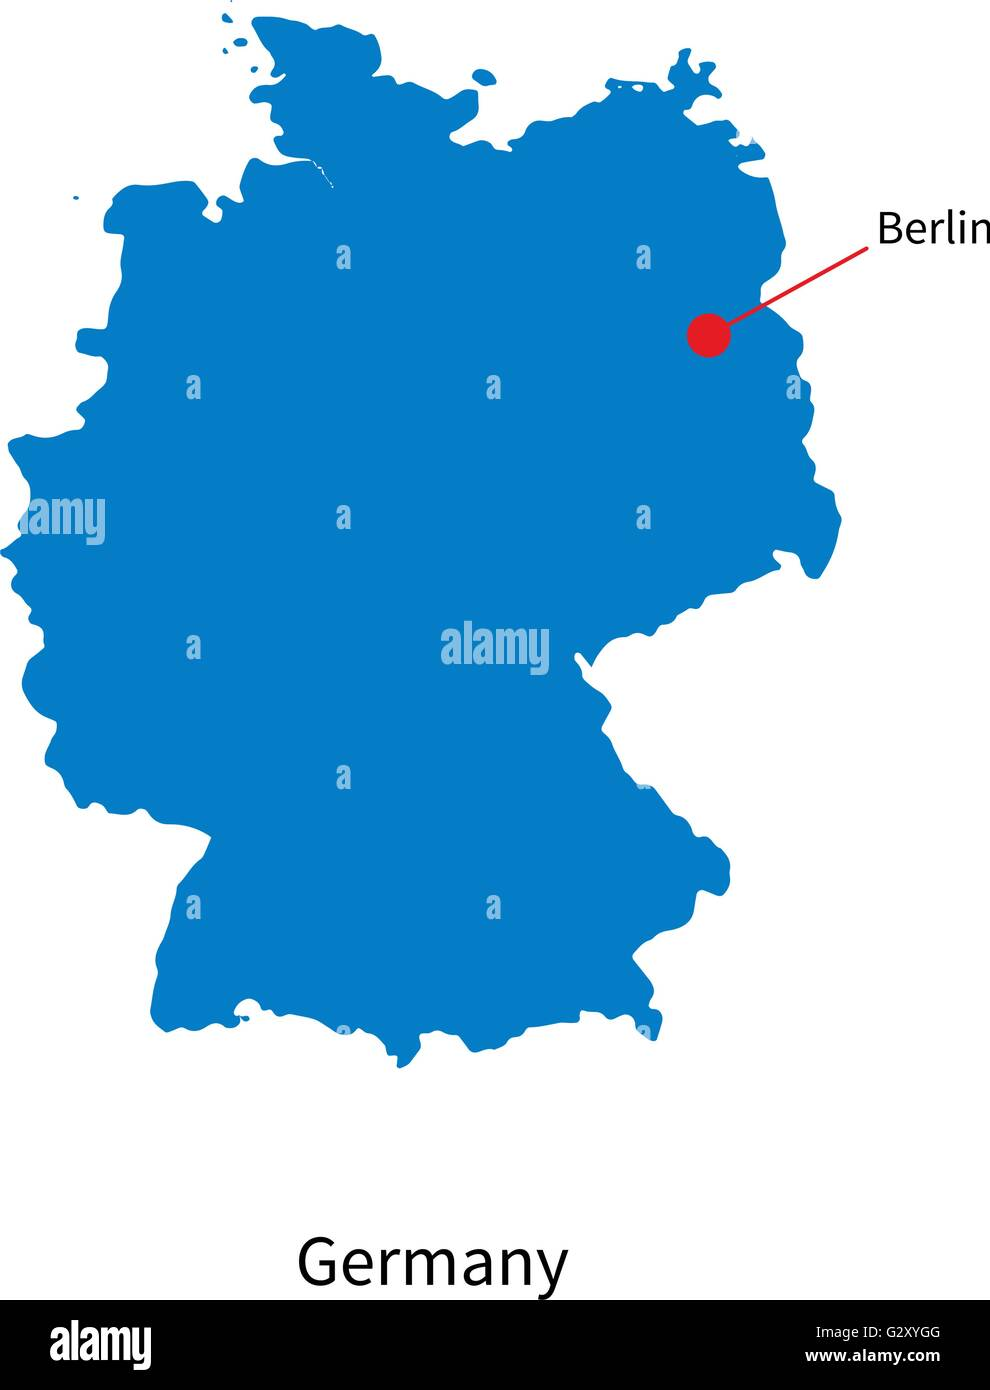 Detailed vector map of germany and capital city berlin stock vector detailed vector map of germany and capital city berlin gumiabroncs Images